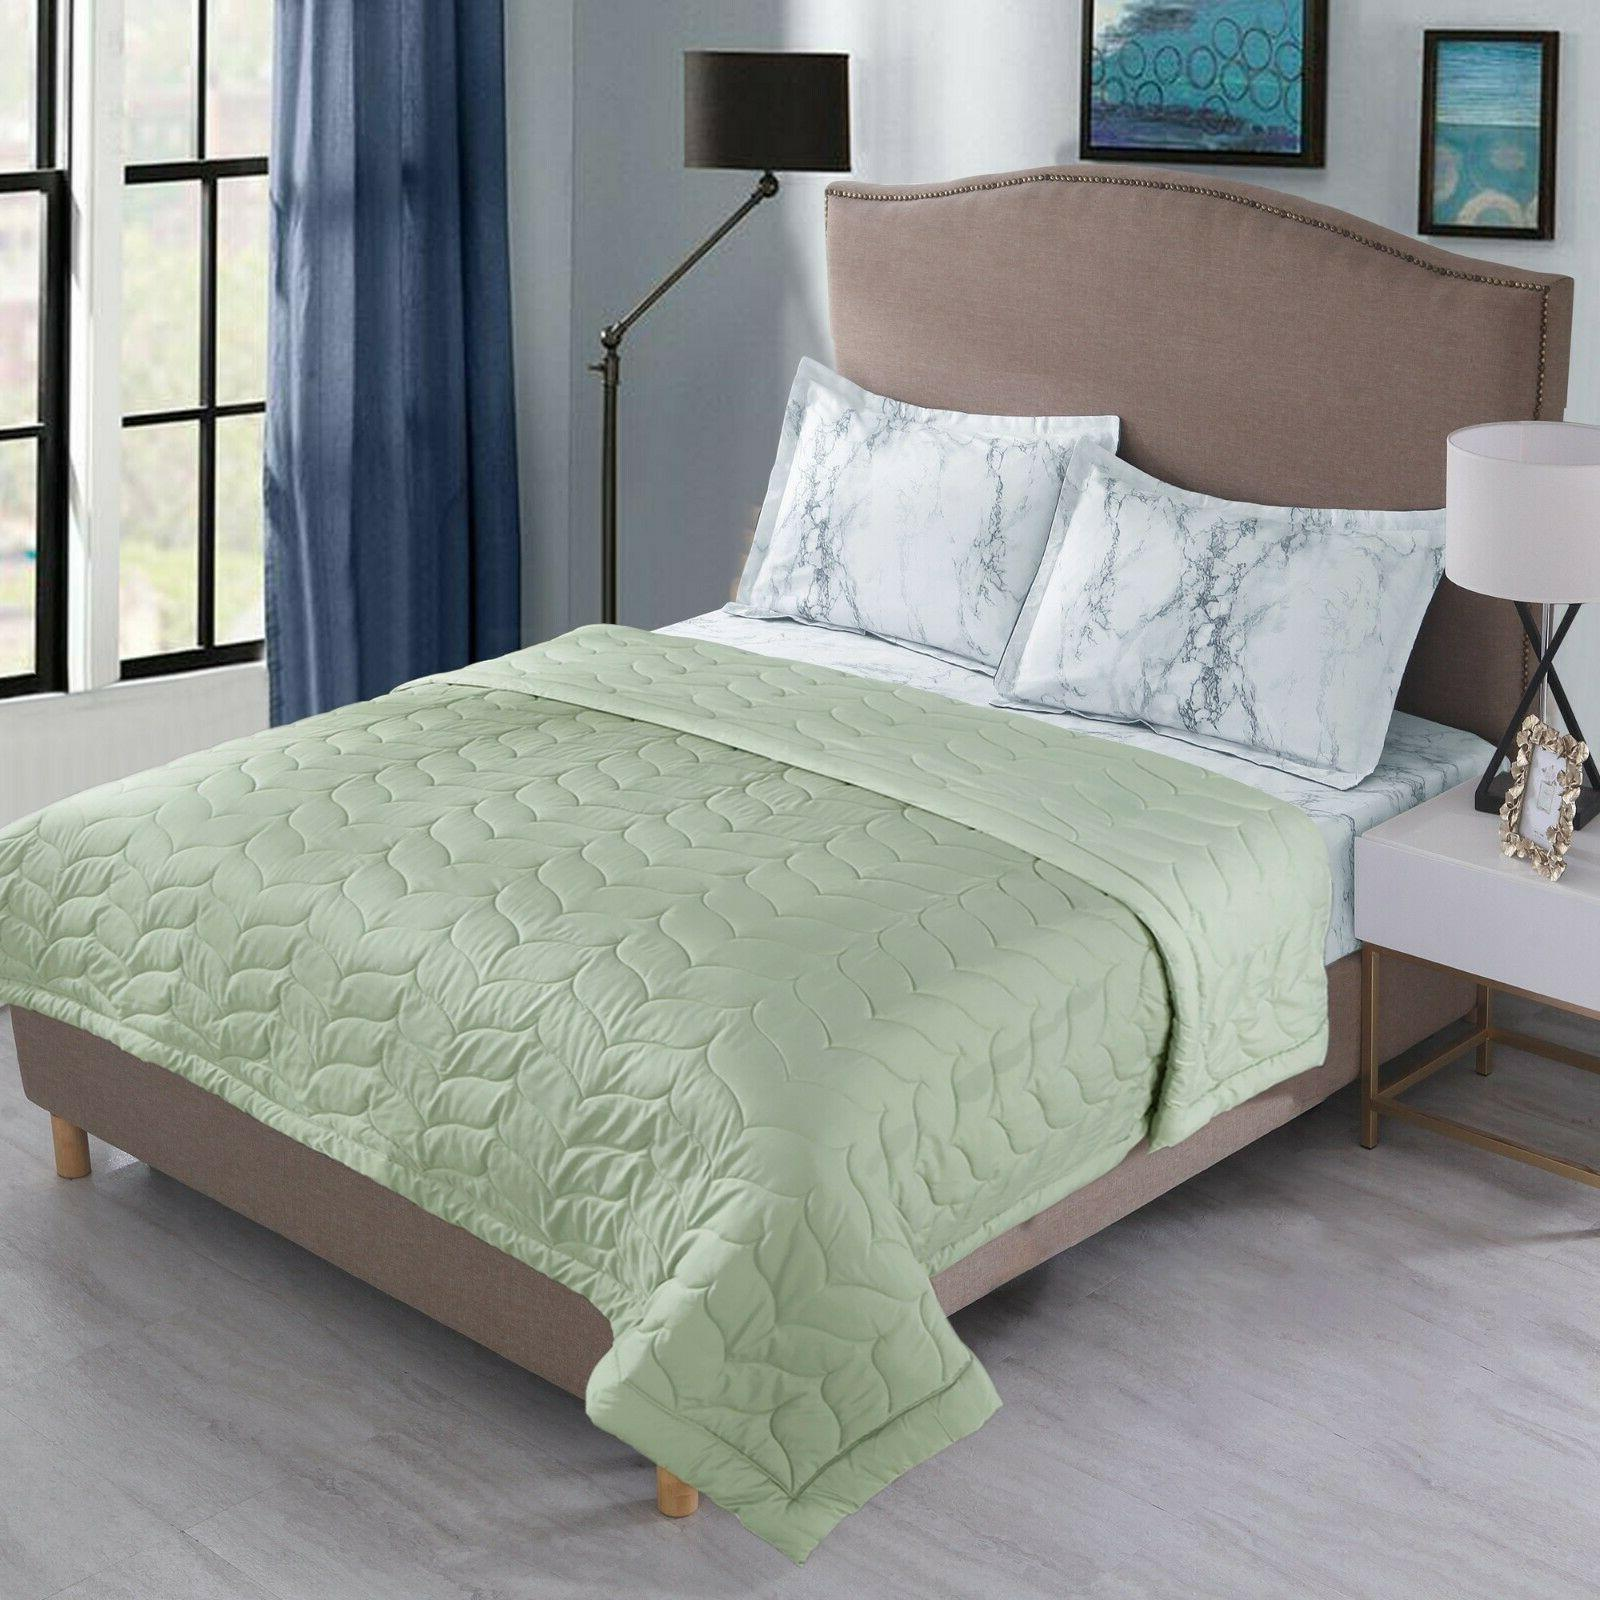 Quilted Down Alternative Comforter Lightweight Reversible Size